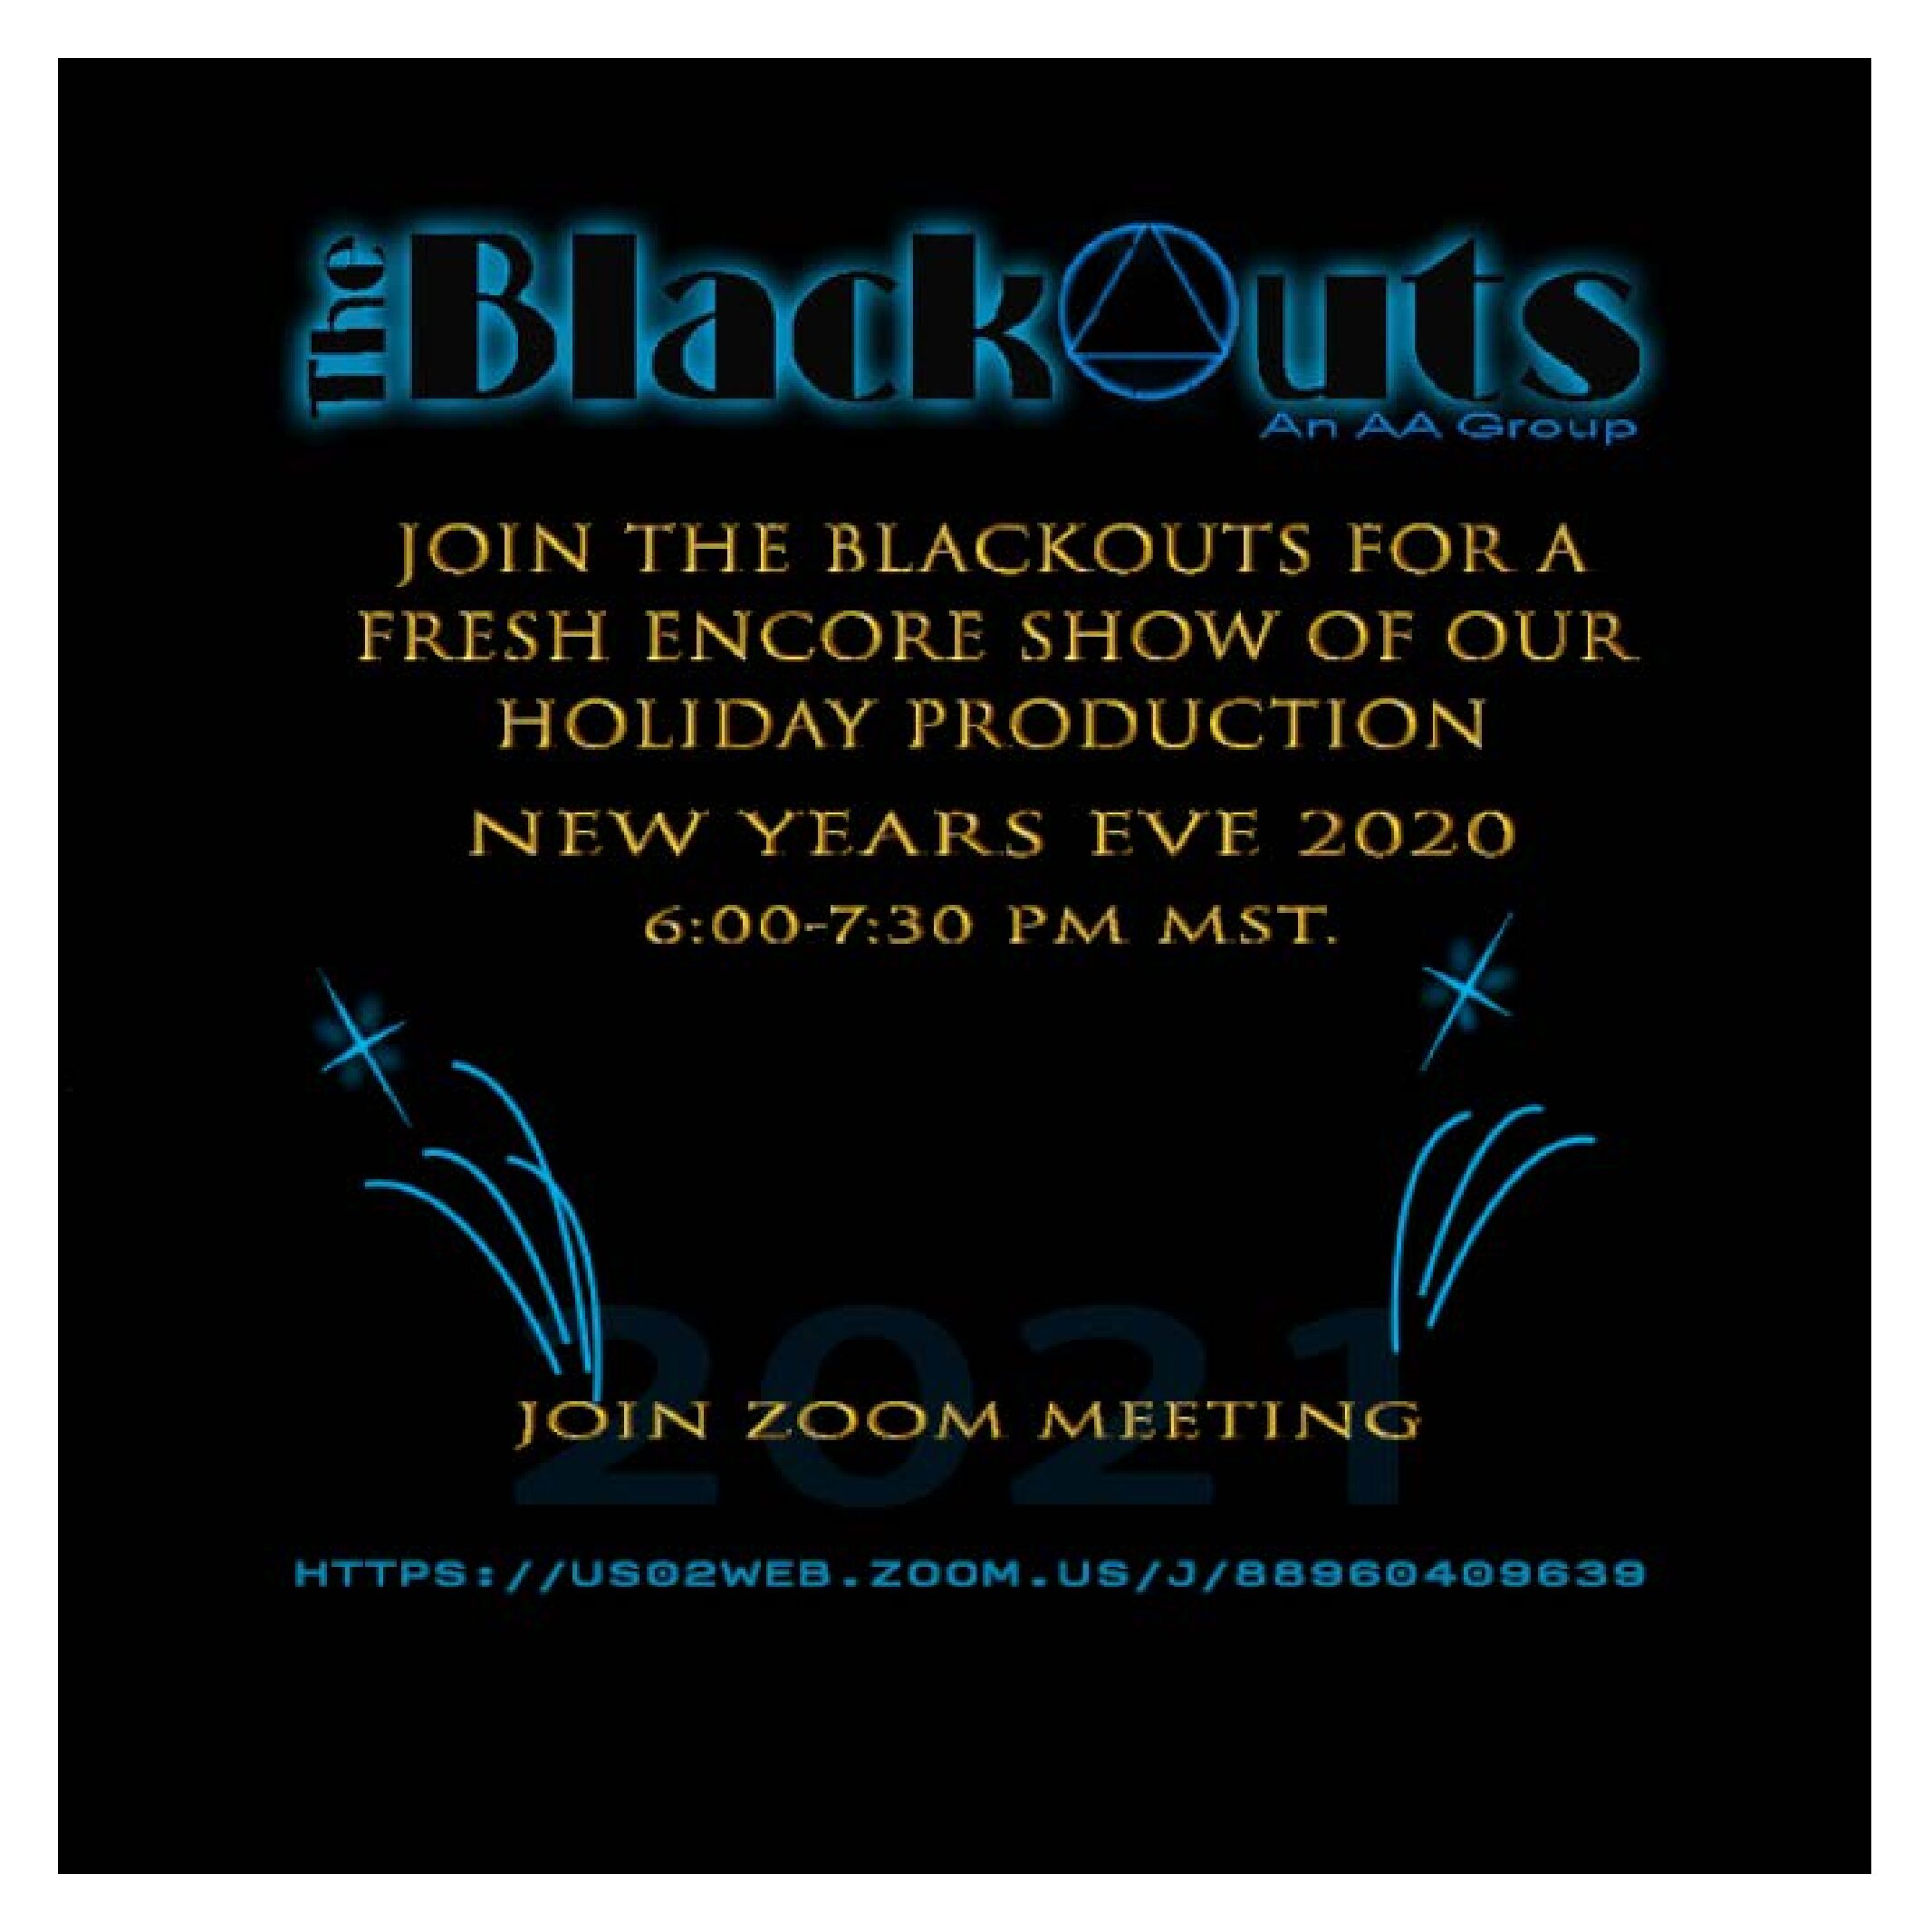 The Blackouts on New Year's Eve!